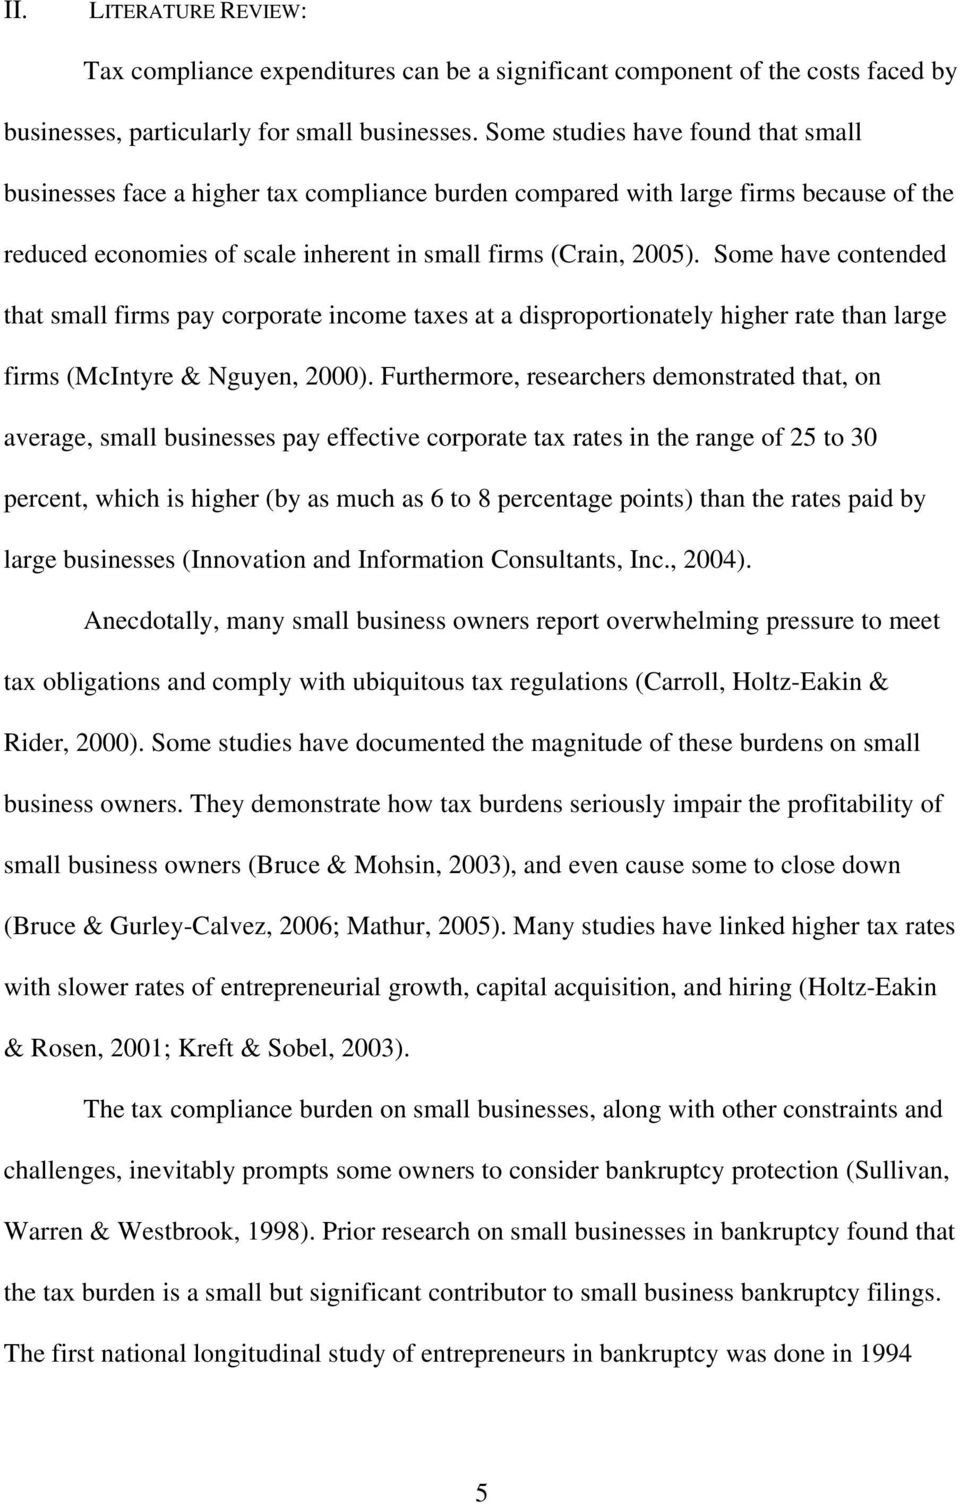 Some have contended that small firms pay corporate income taxes at a disproportionately higher rate than large firms (McIntyre & Nguyen, 2000).